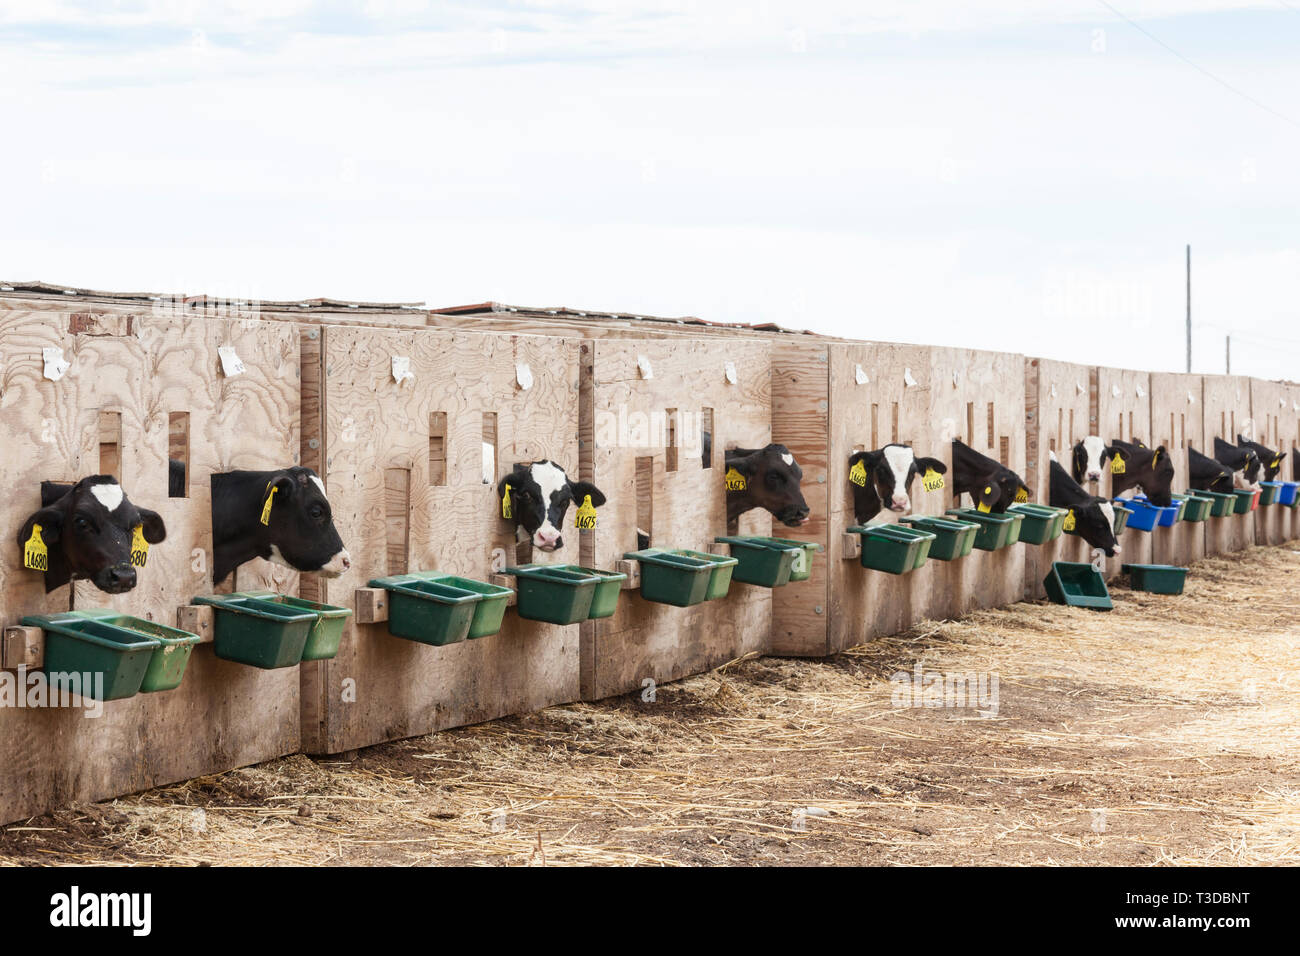 Veal cattle calves livestock in pens crates on a farm. Possible animal cruelty. - Stock Image